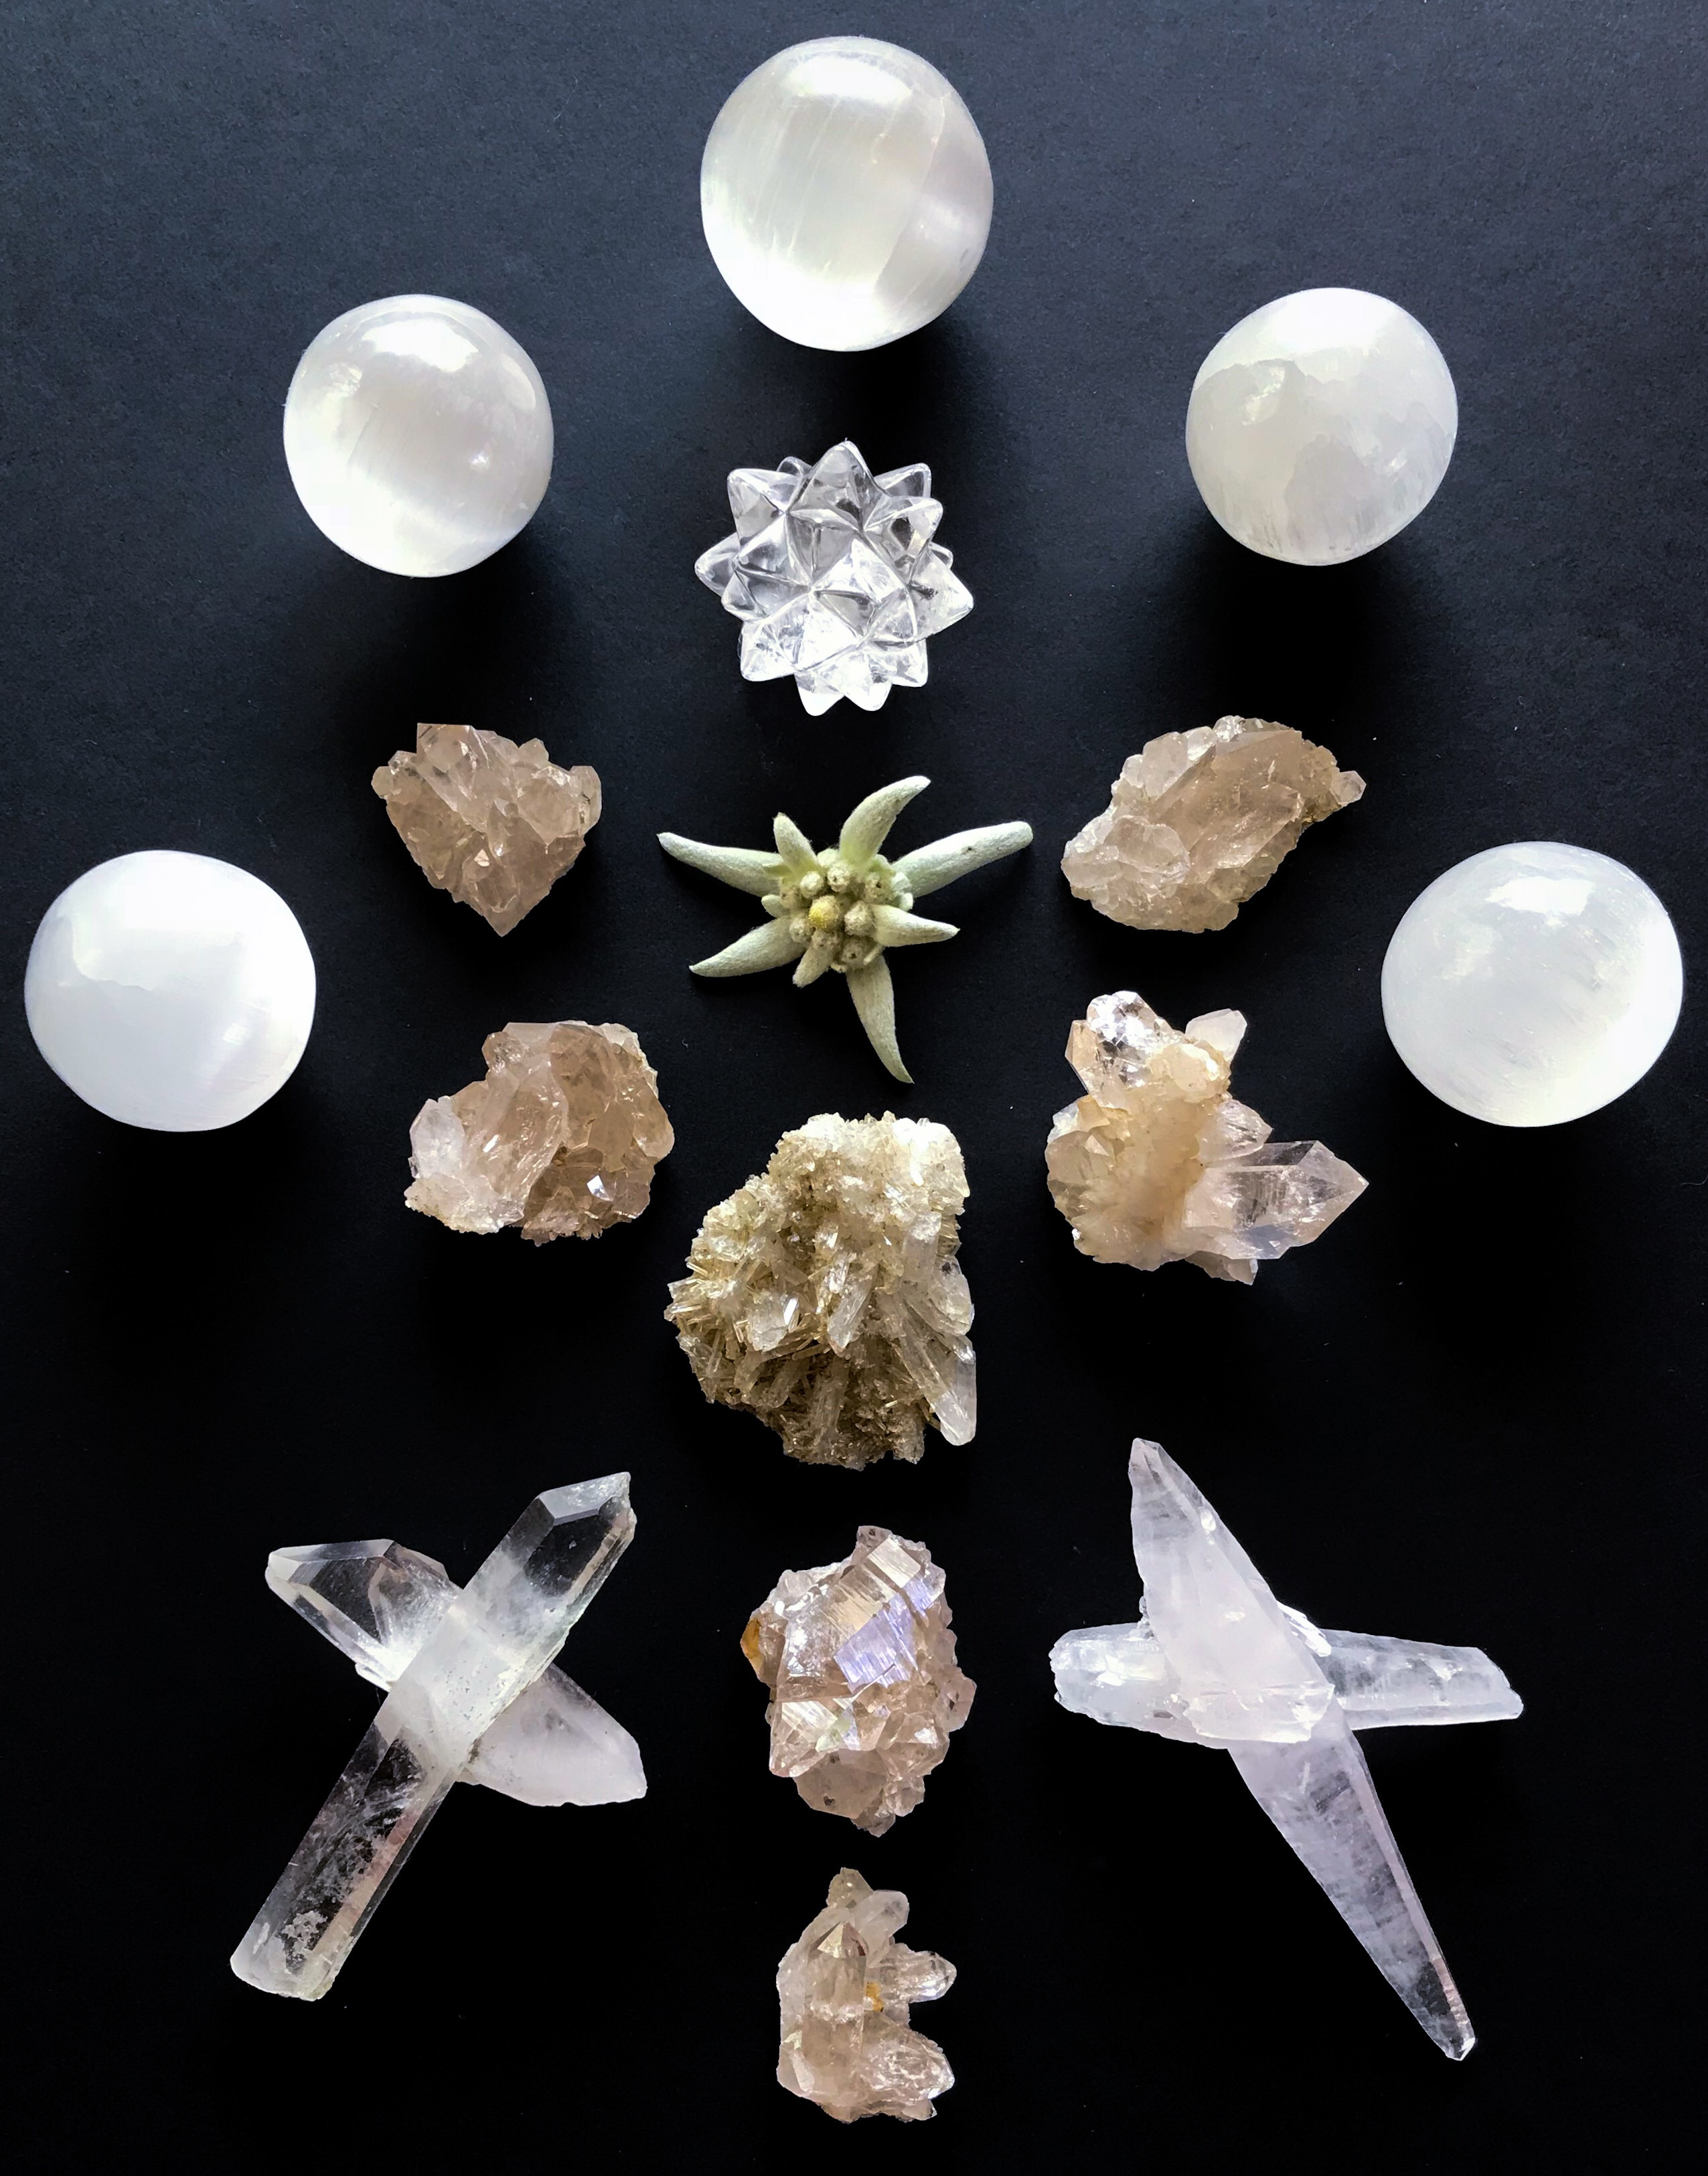 Quartz, Selenite and Edelweiss